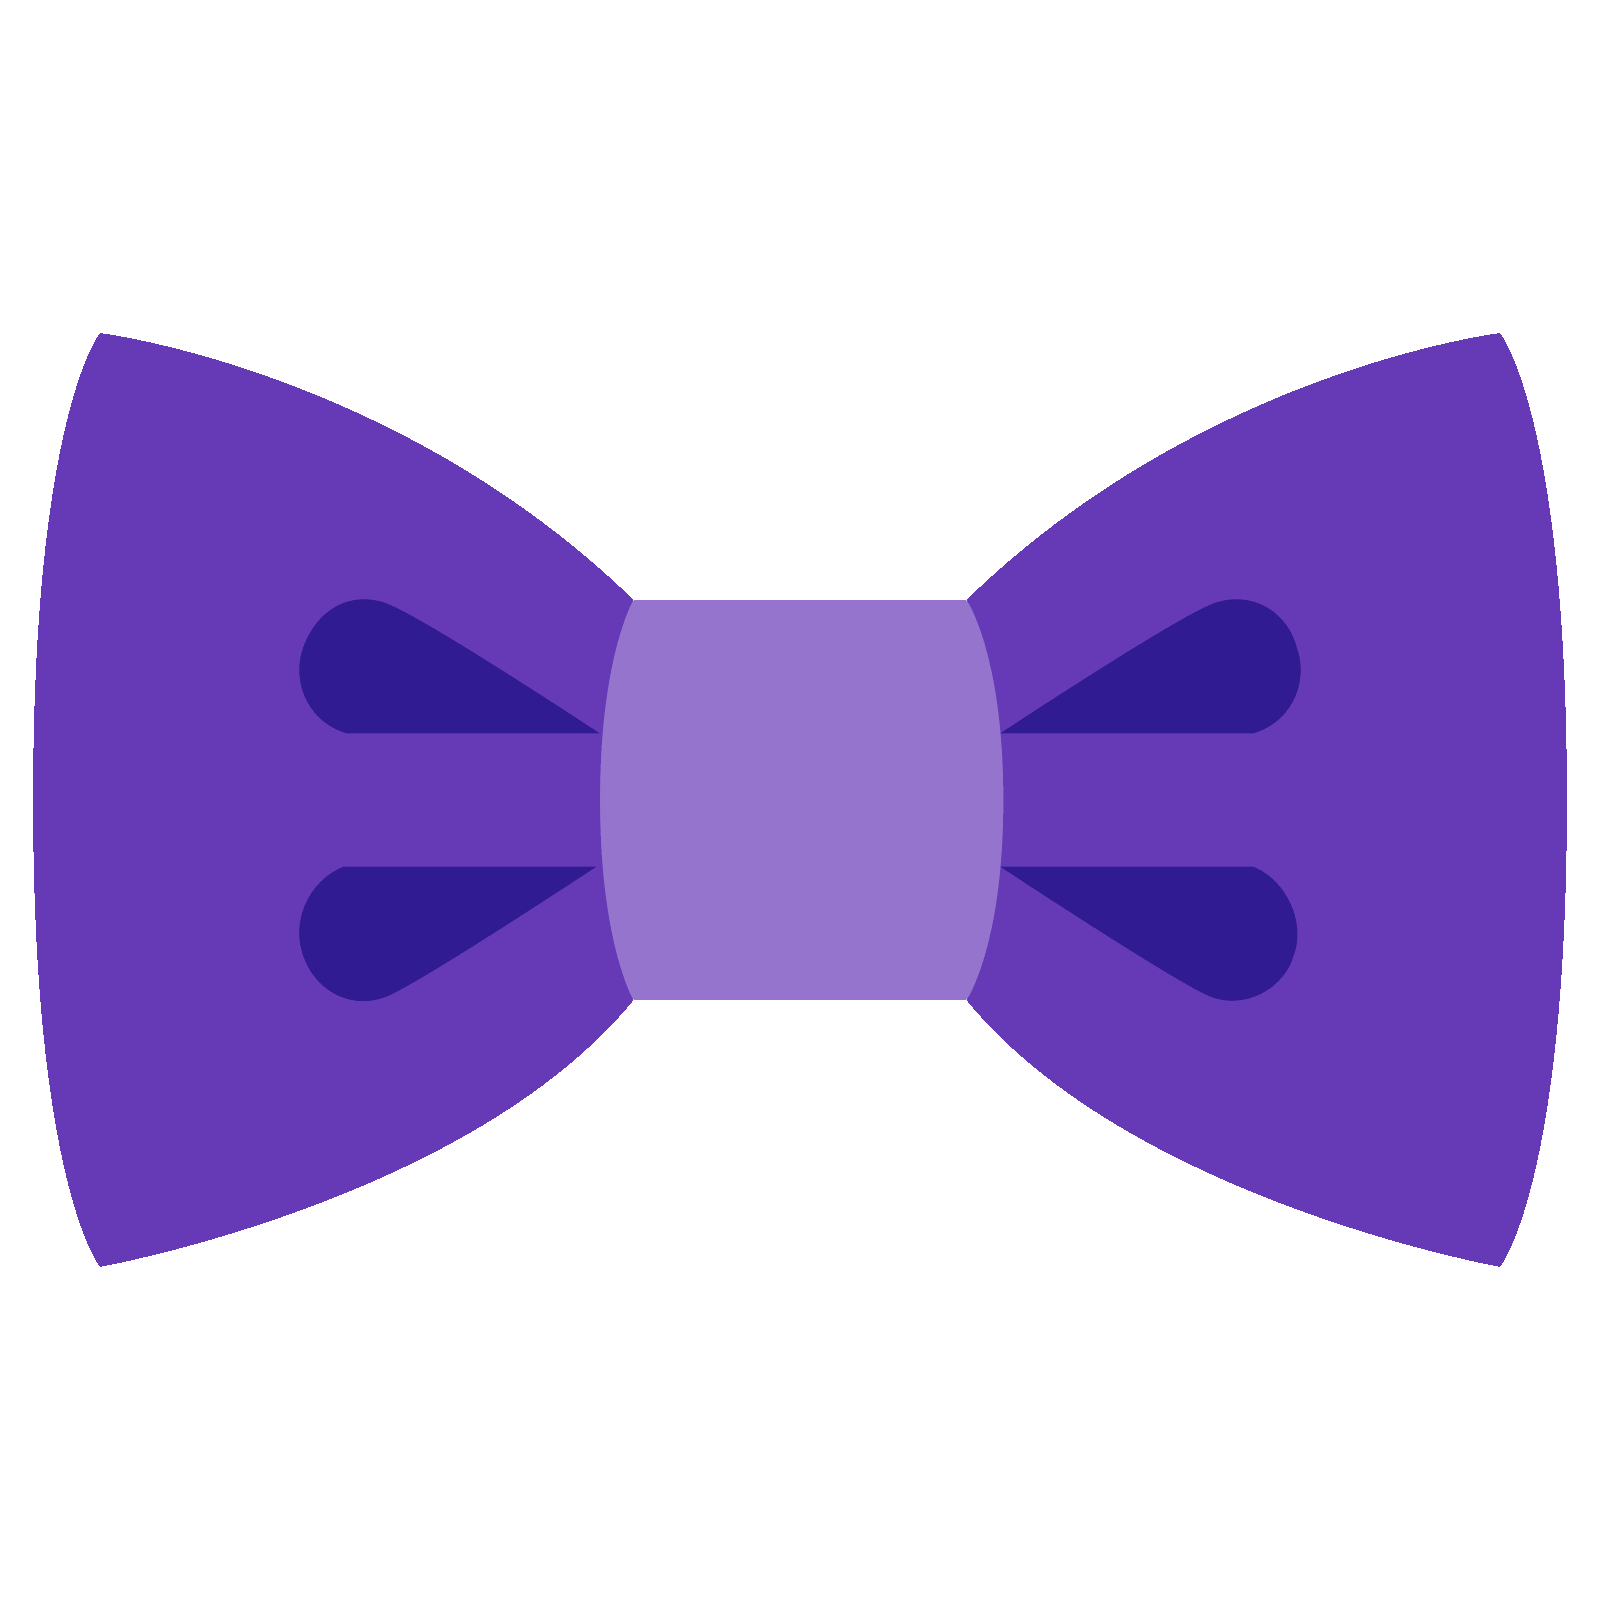 Png bowtie. Filled bow tie icon